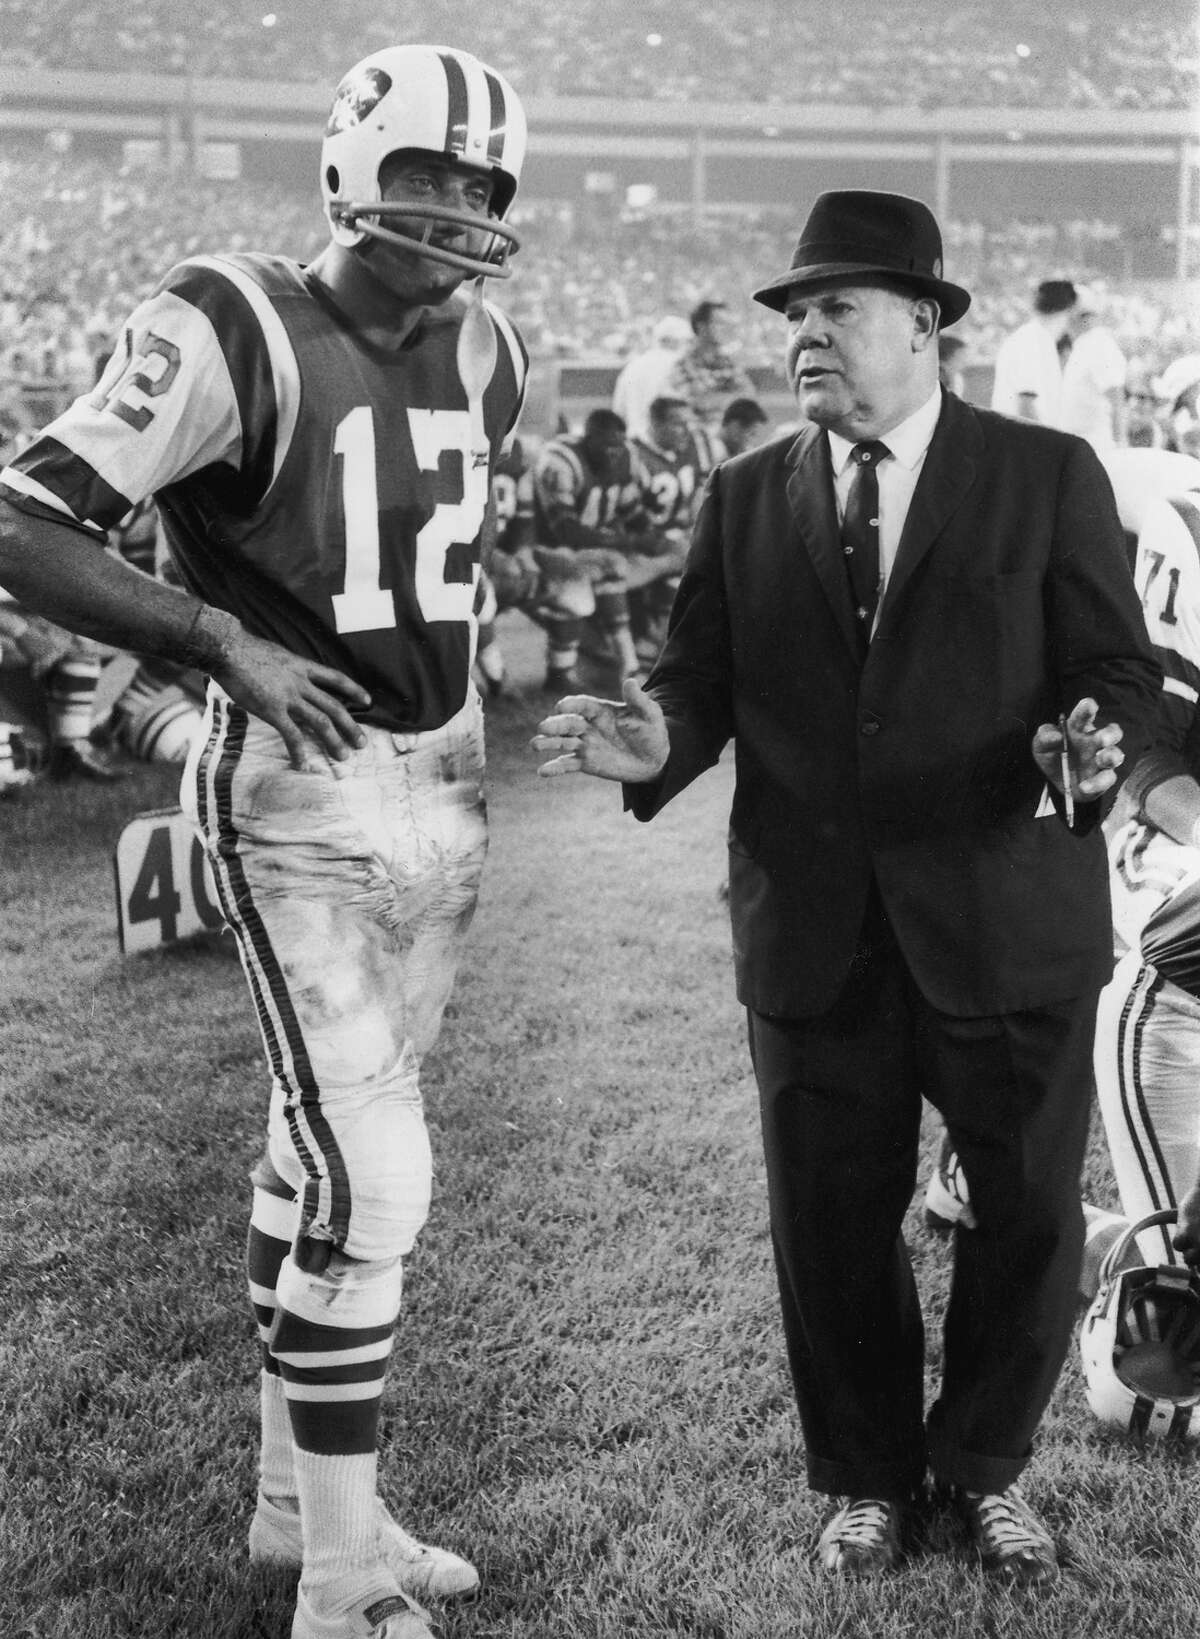 New York Jets quarterback Joe Namath standing with his hands on his hips while listening to coach Weeb Ewbank during a game in Shea Stadium, Flushing, New York, fall season, 1965.